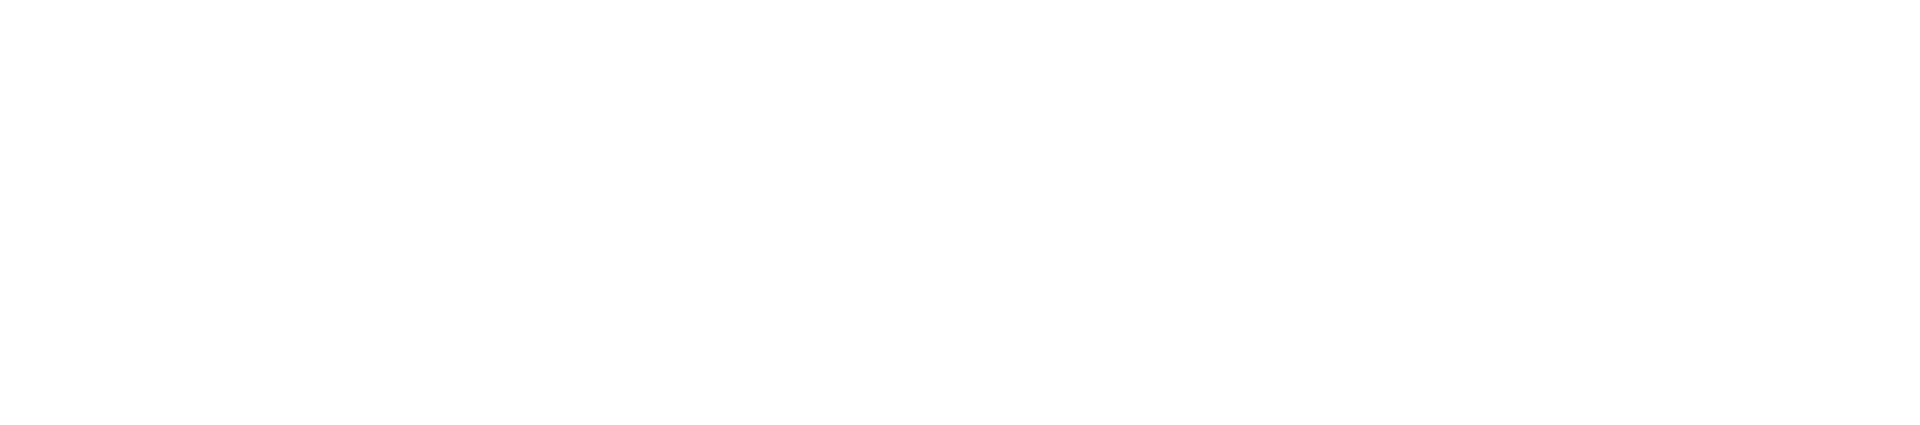 Michael Duff Photography